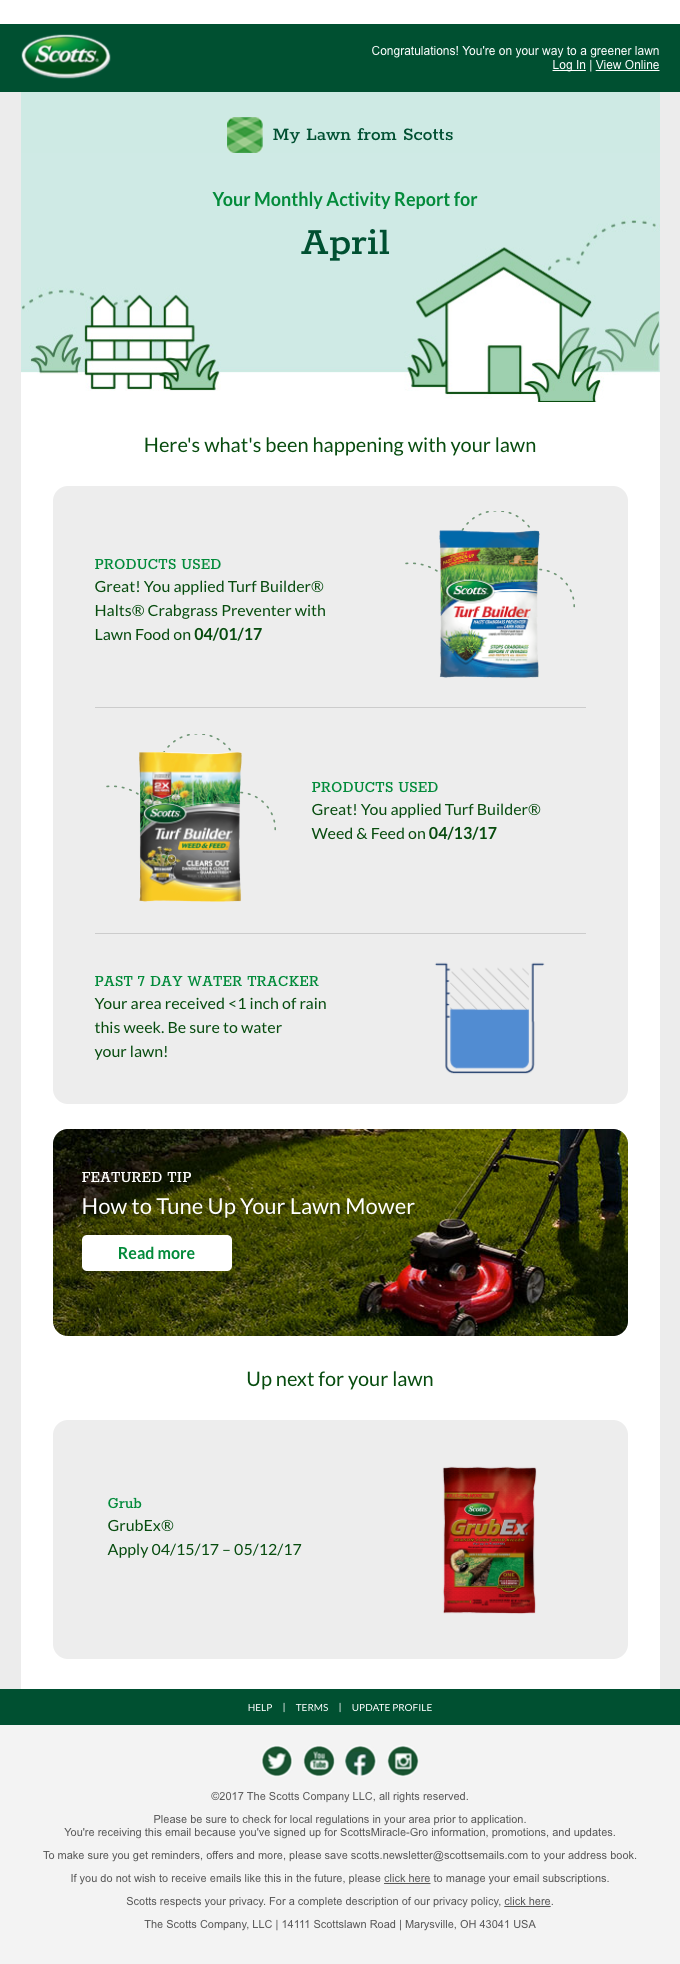 Your April My Lawn Activity Report is Ready